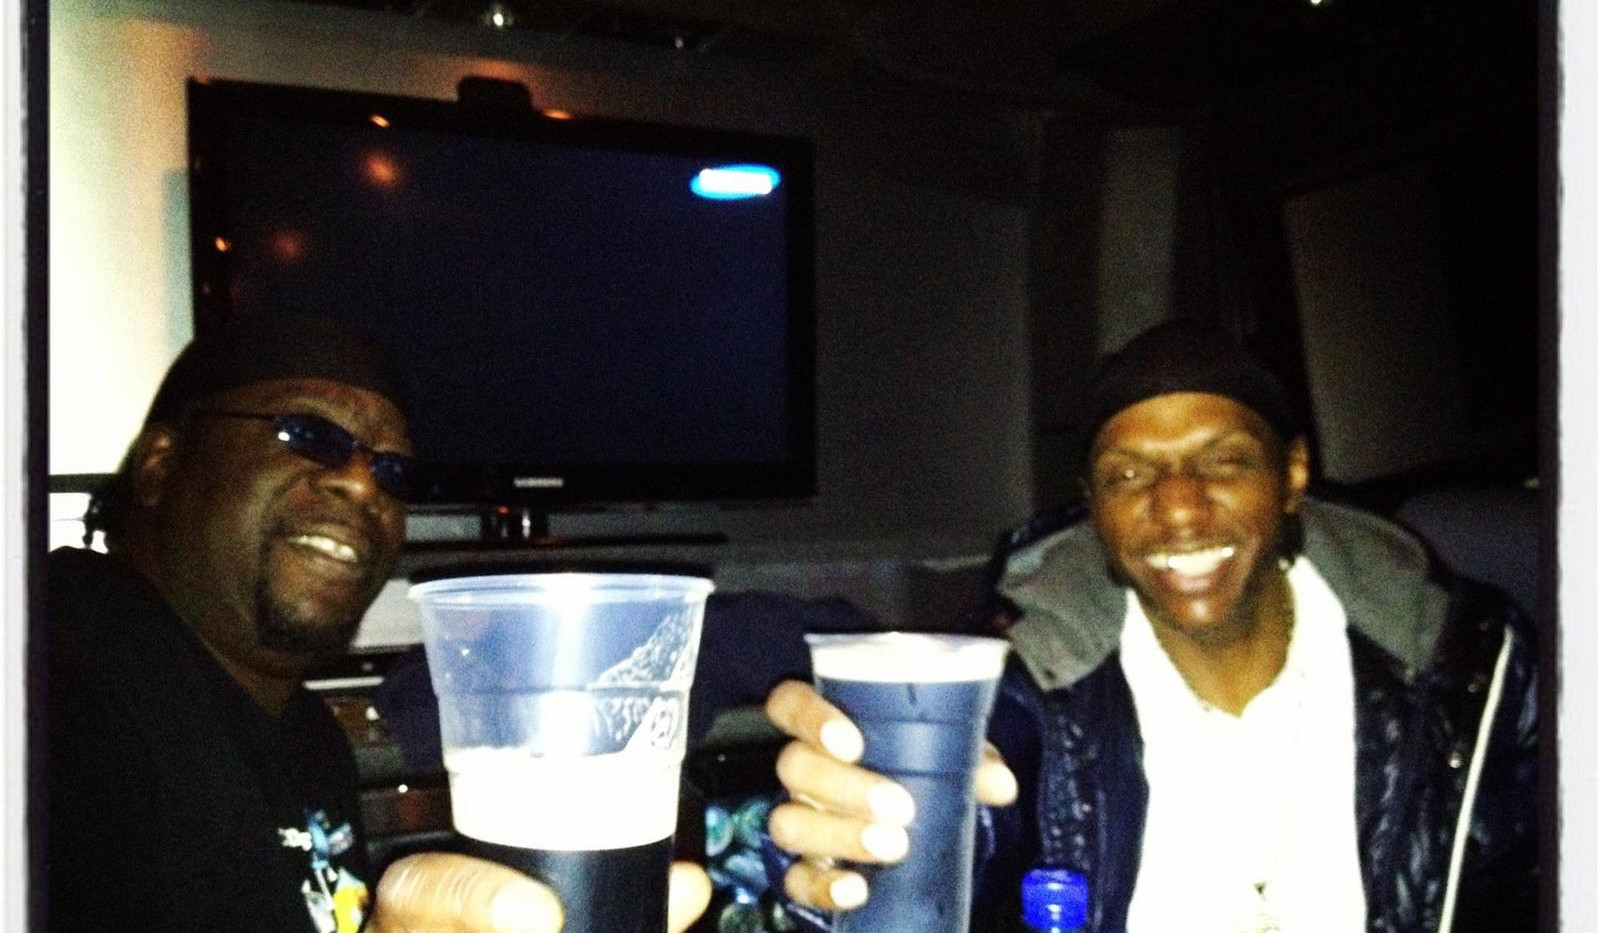 Seanie T & Ricky Ranking on the tour bus somewhre in europe